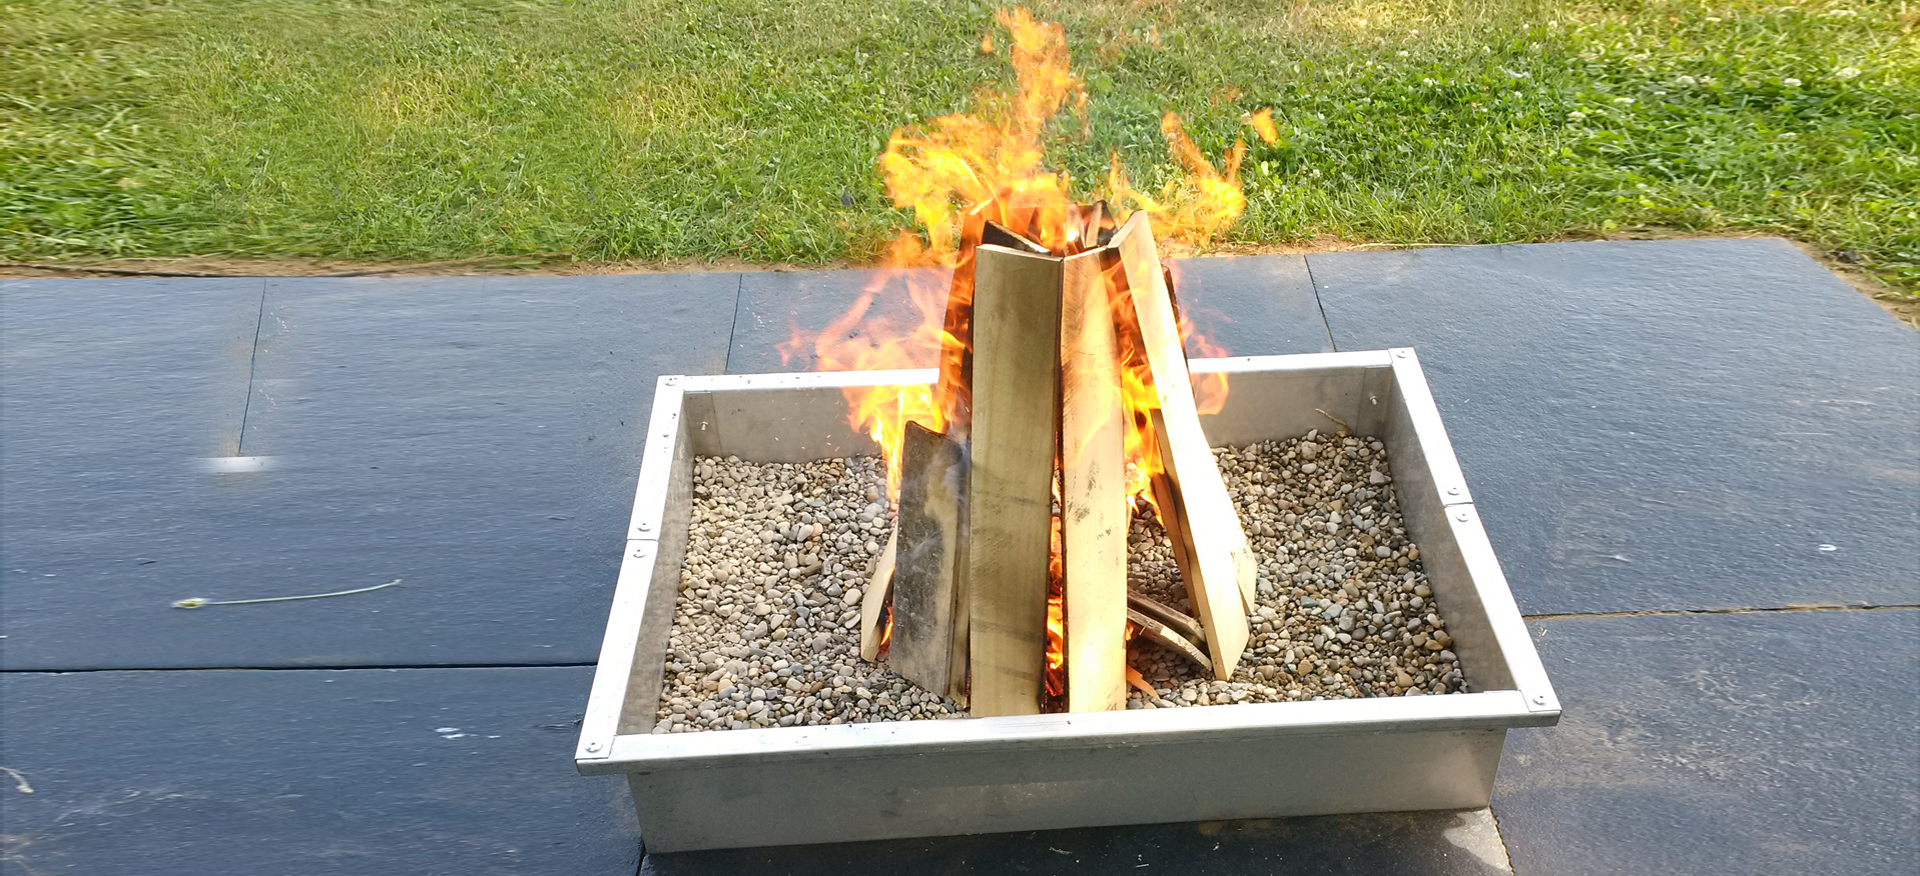 Modern Square Stainless Steel Fire Pits available nationwide through EHS Sales Ltd. and approved dealers